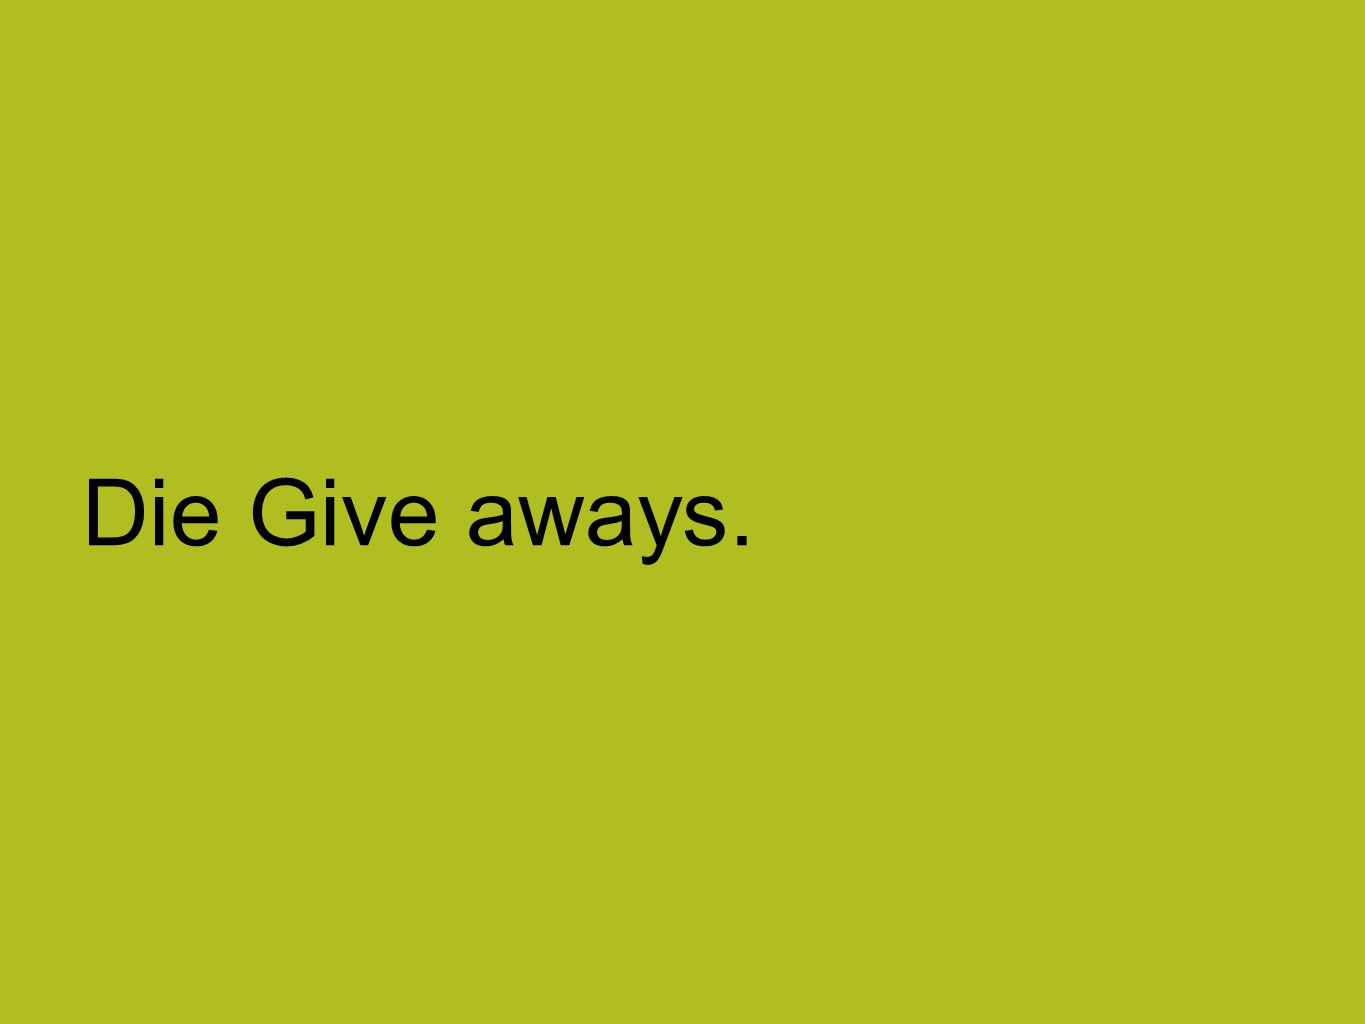 Die Give aways.